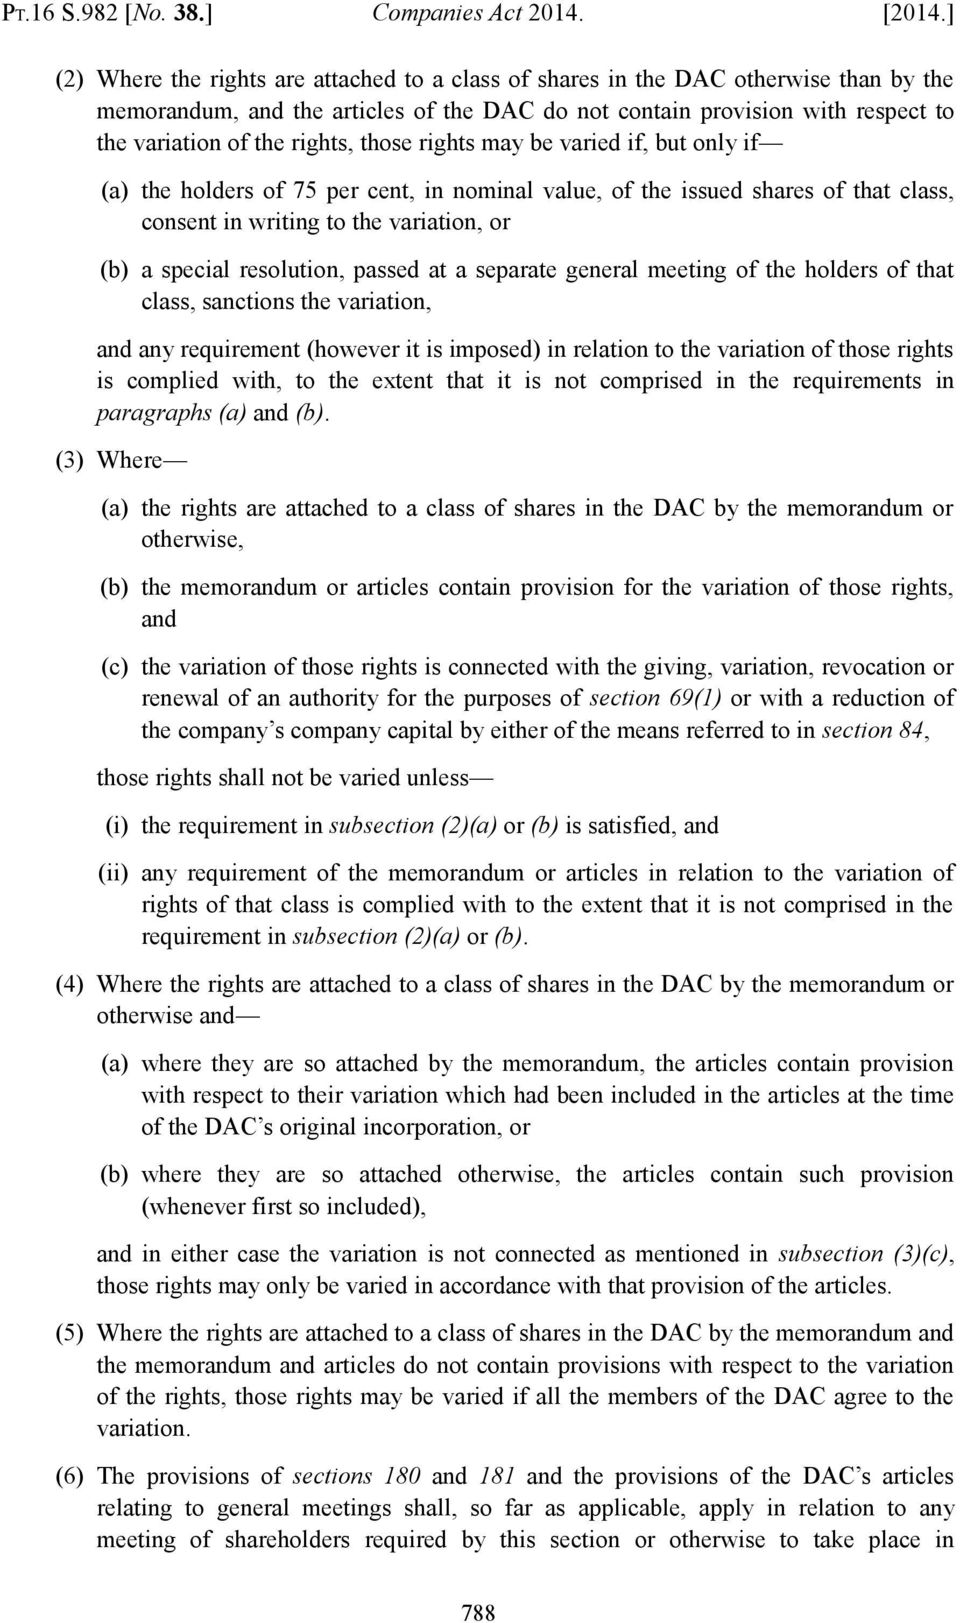 those rights may be varied if, but only if (a) the holders of 75 per cent, in nominal value, of the issued shares of that class, consent in writing to the variation, or (b) a special resolution,